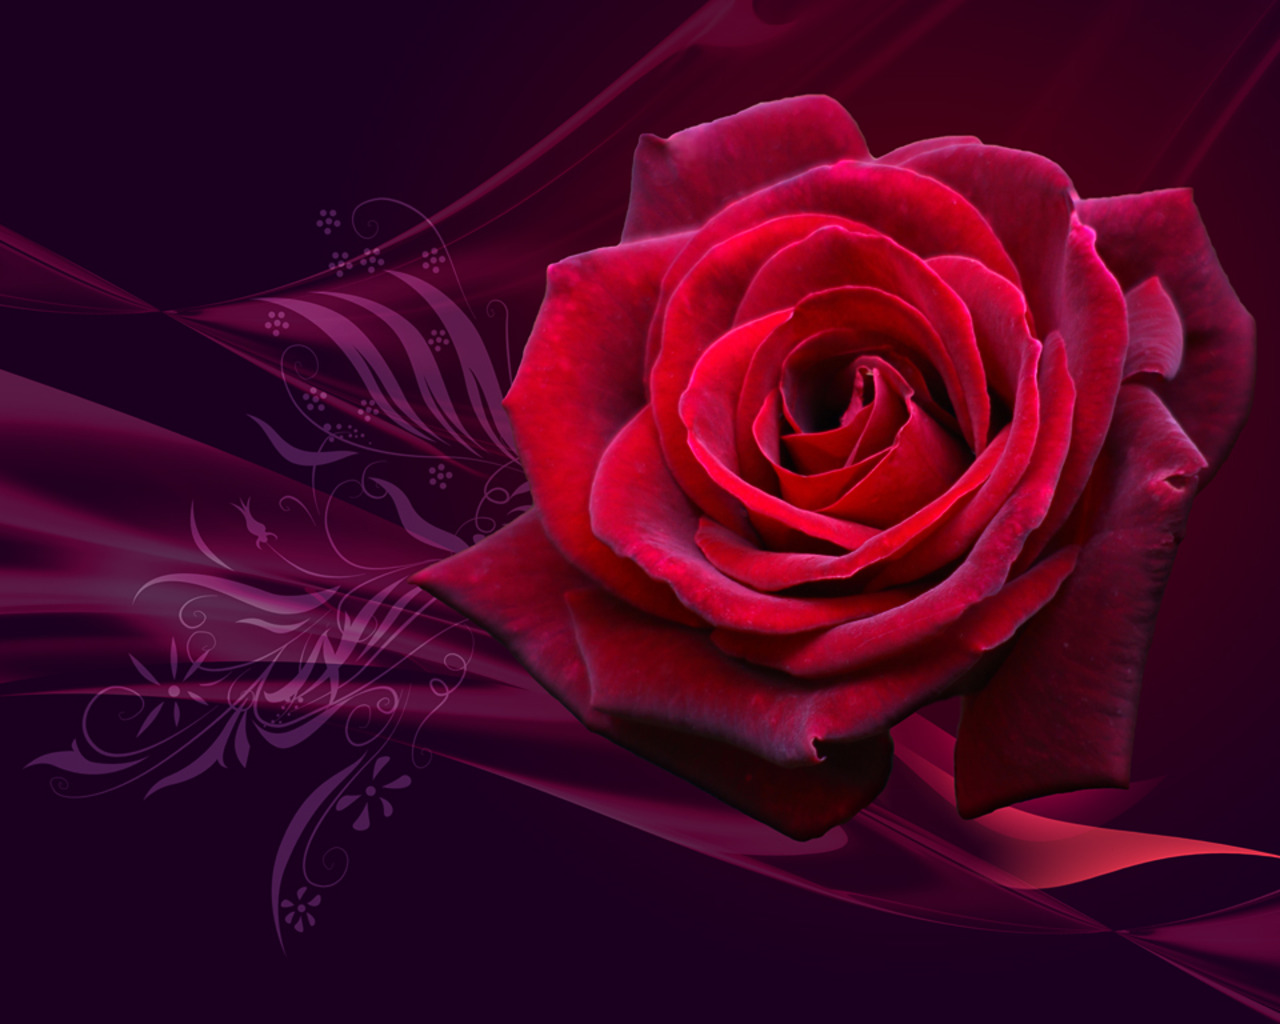 LAP TOP VALLEY Red Roses   Wallpapers 1280x1024